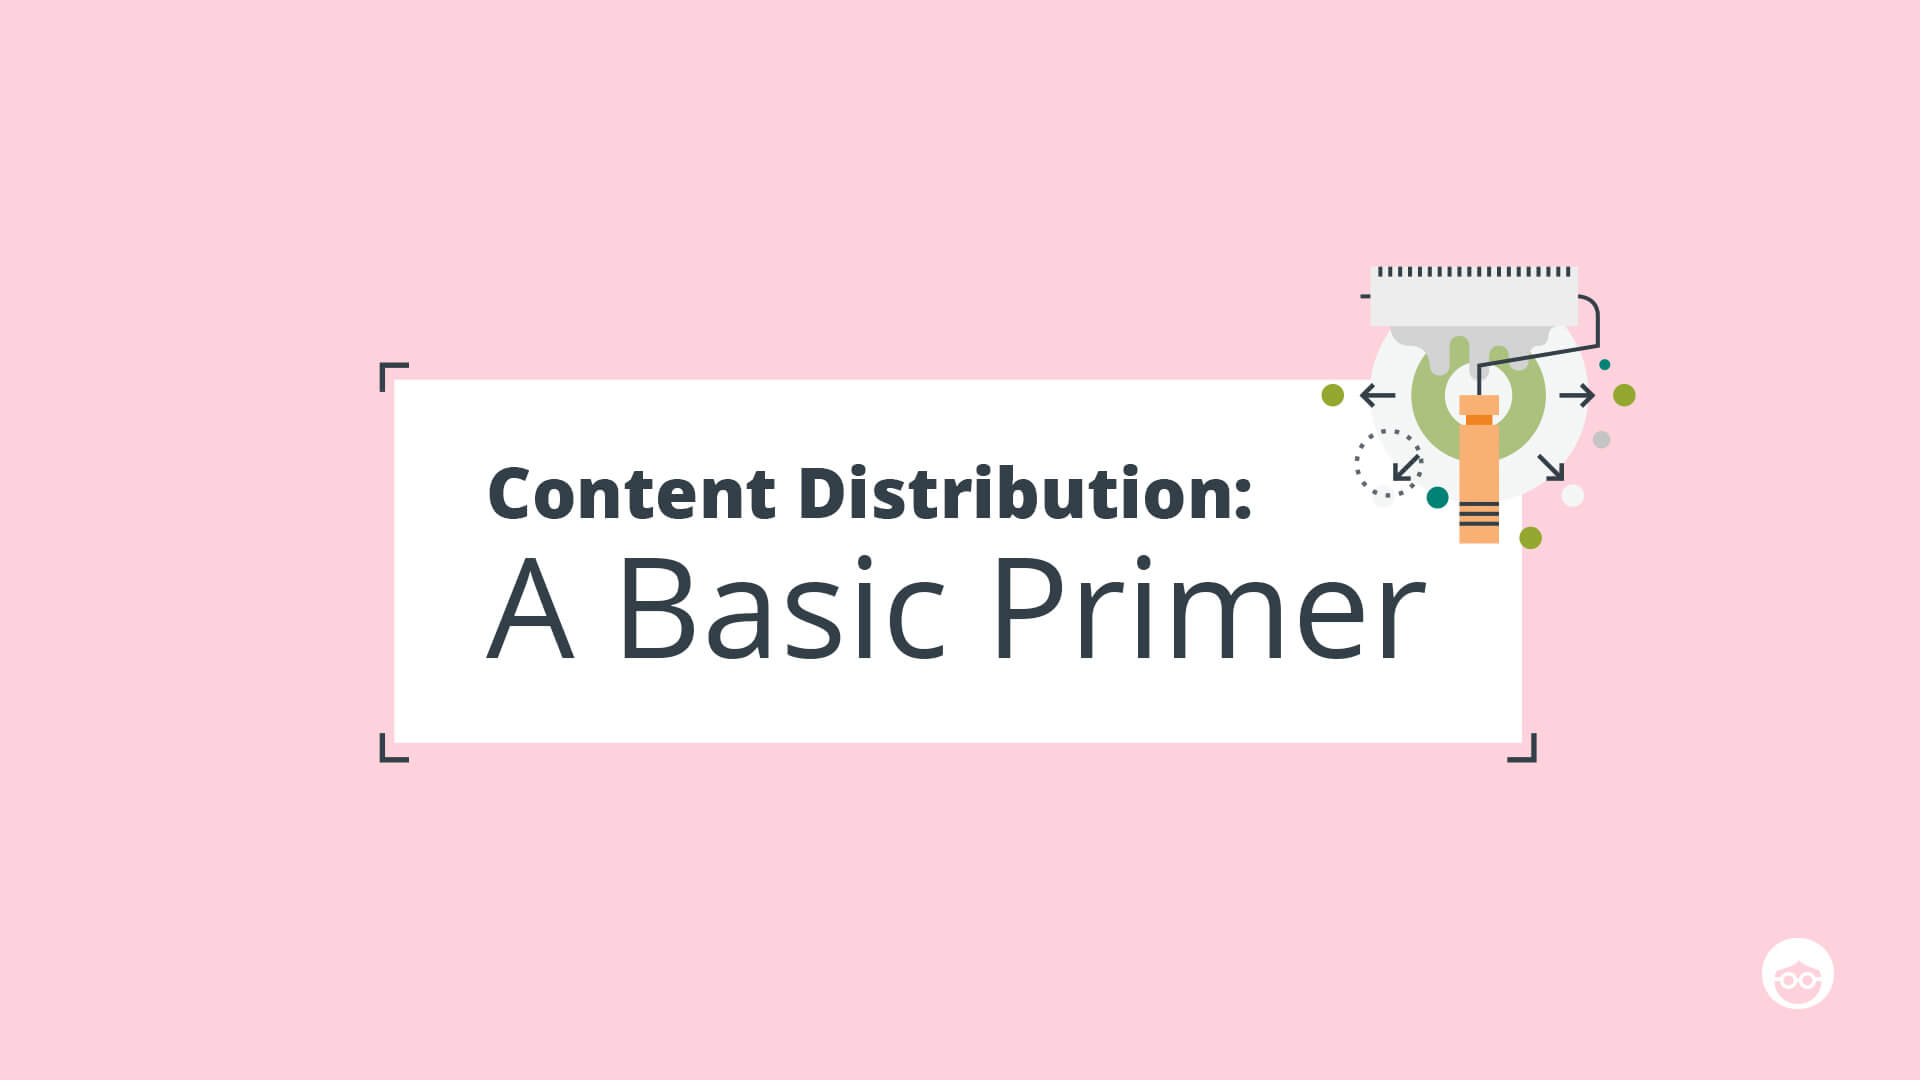 Content Distribution: A Basic Primer